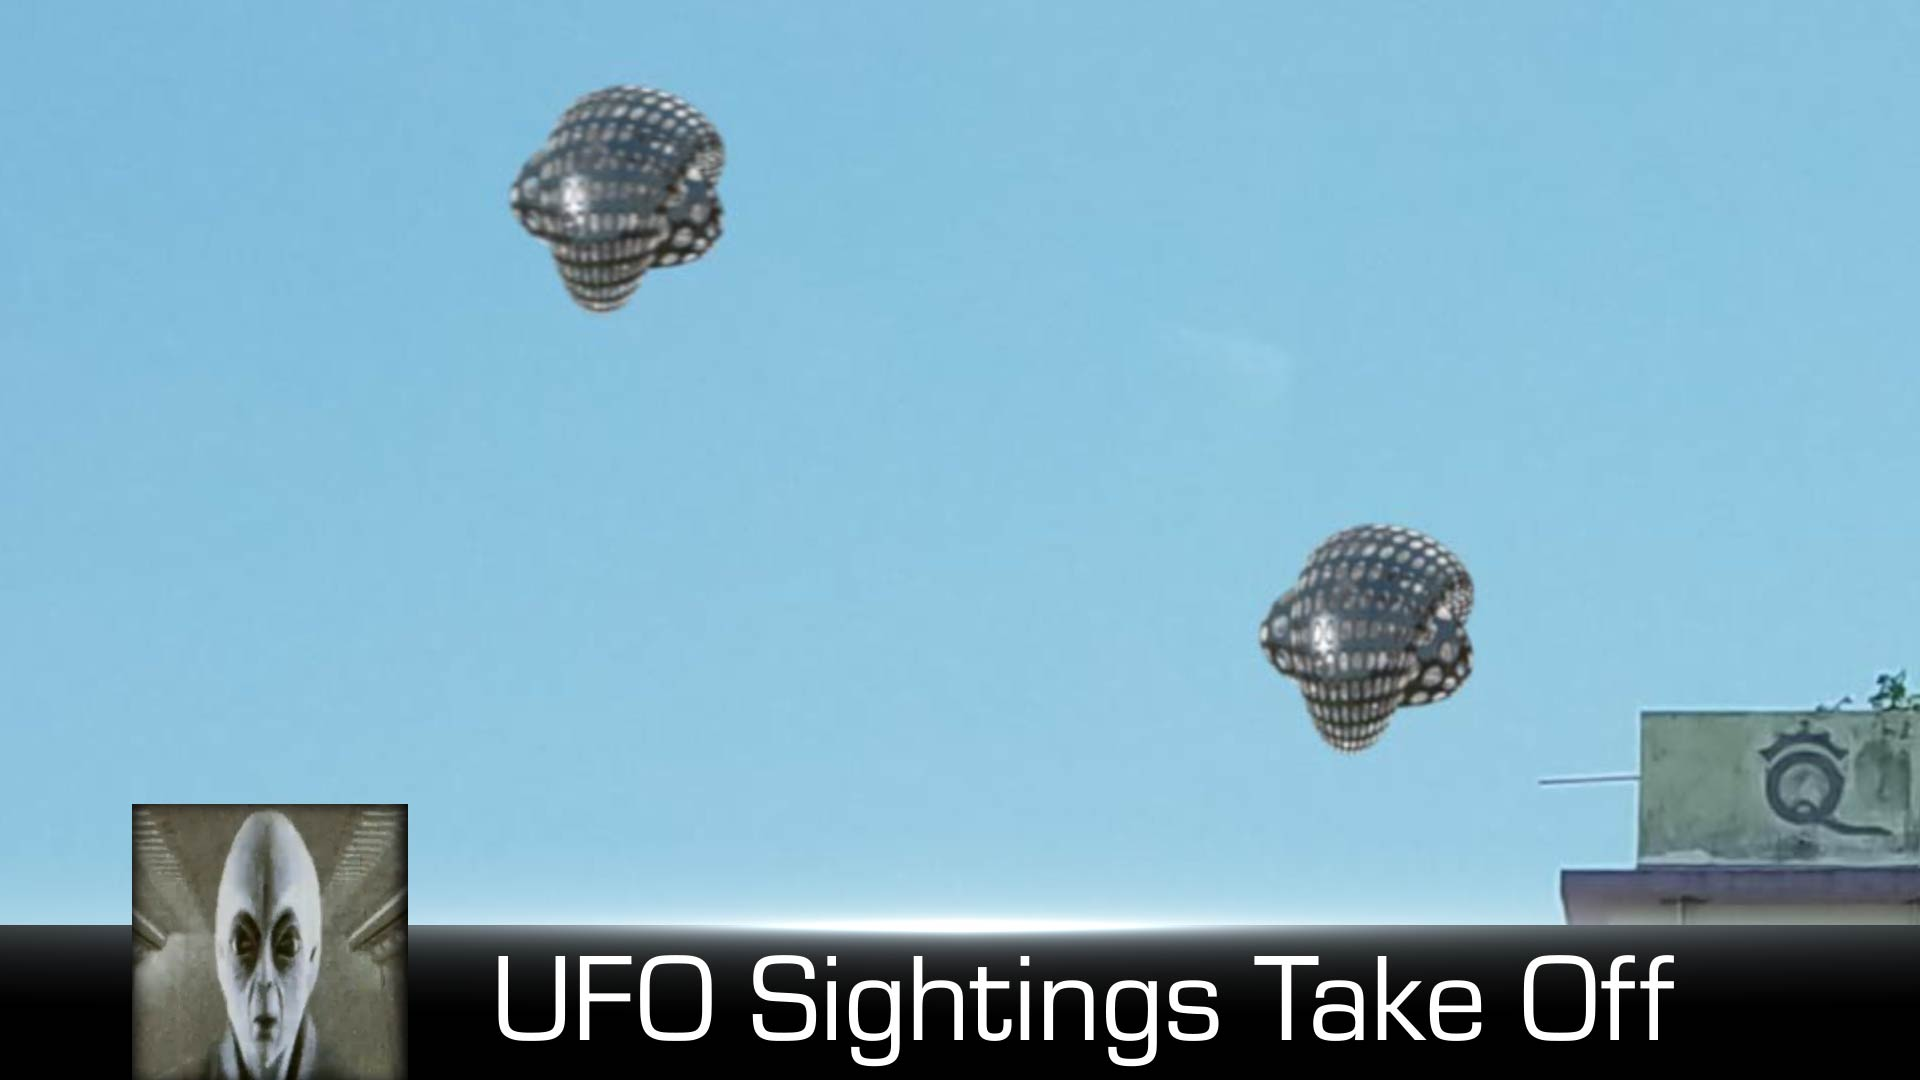 UFO Sightings Two Obejects Take Off November 23rd 2017